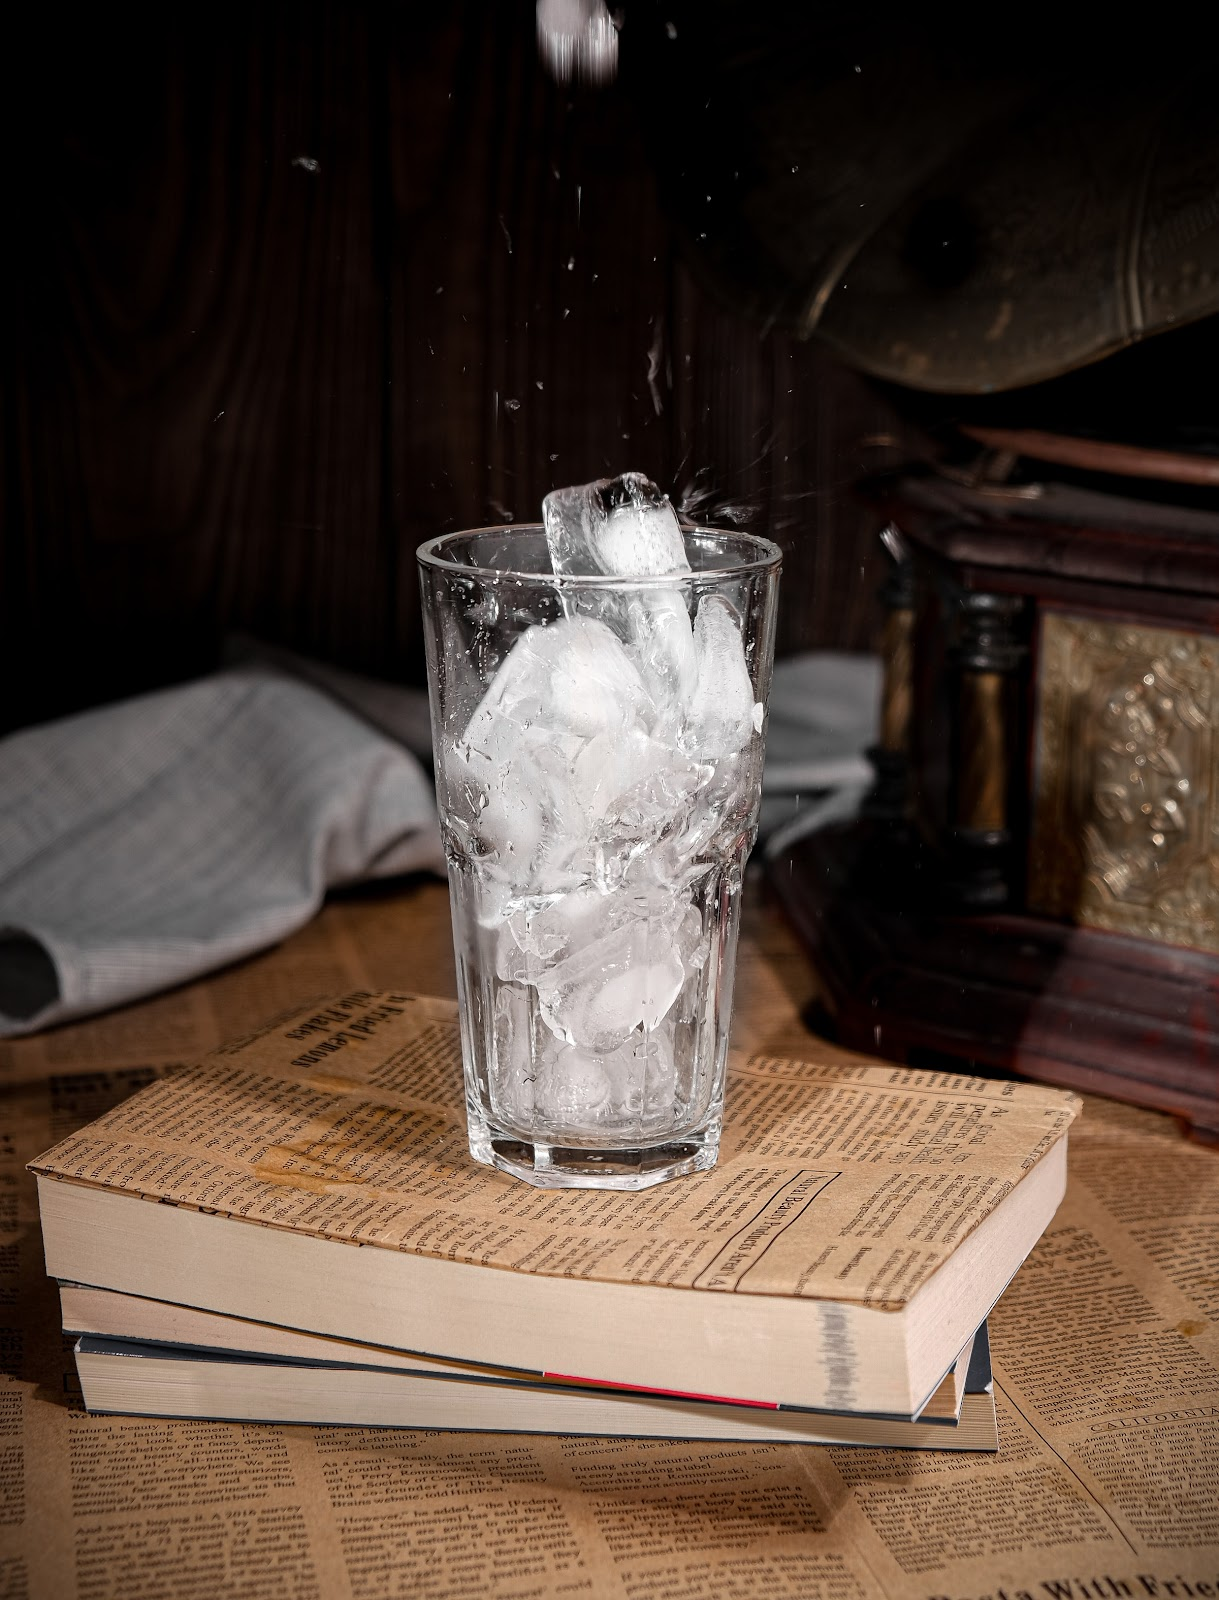 A glass of melting ice rests upon a stack of books.